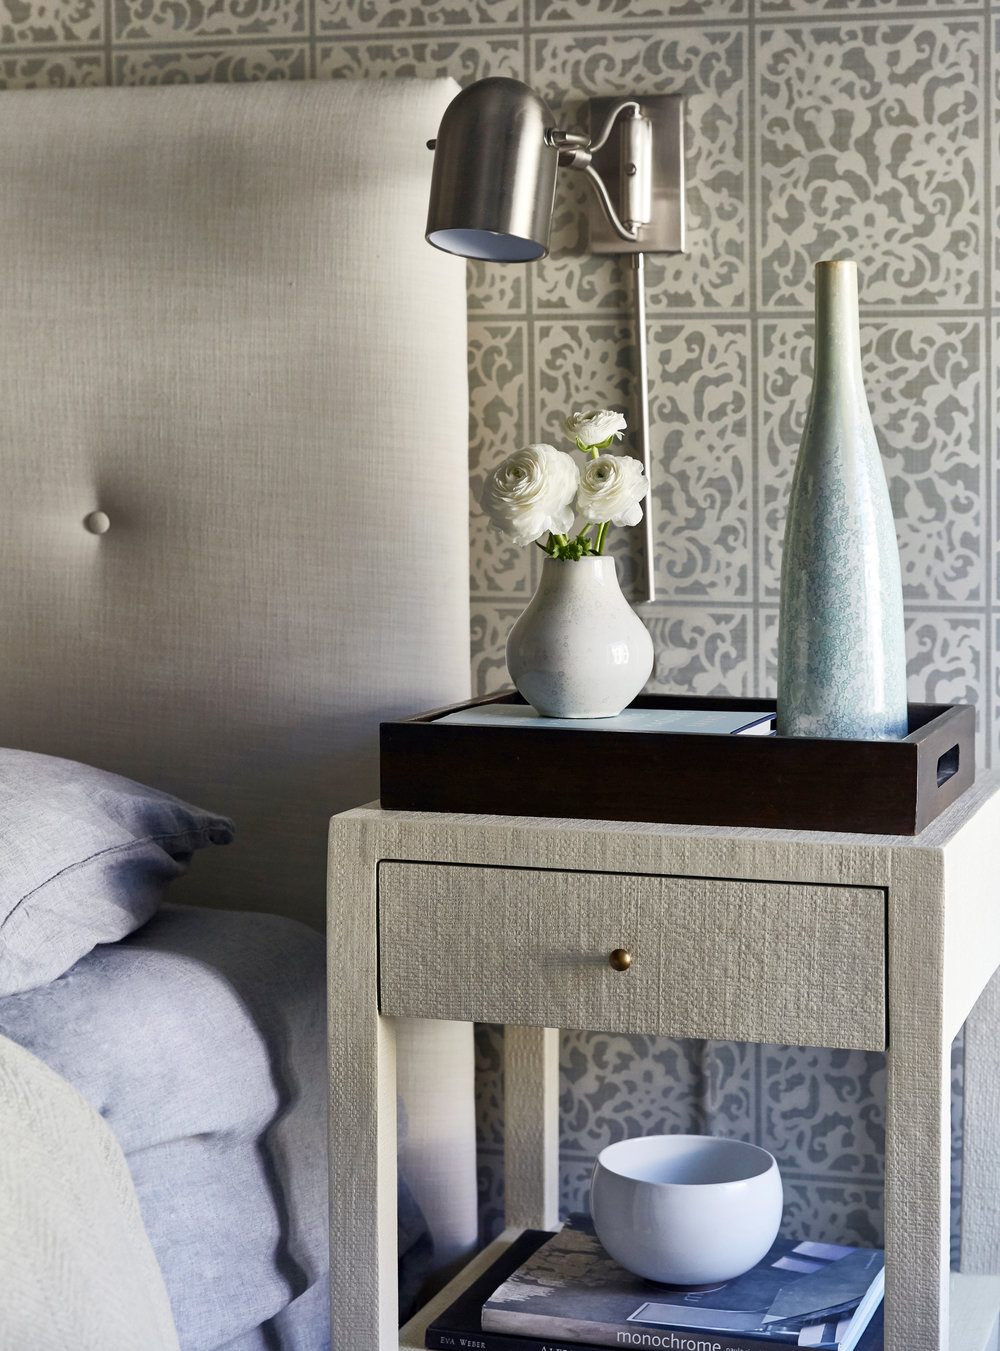 Bedside-White-Flowers-Silver-Reading-Sconce-Task-Light-Chrome-JMorris-Design-Interior-Designer-Brooklyn-New-York-Online.jpg